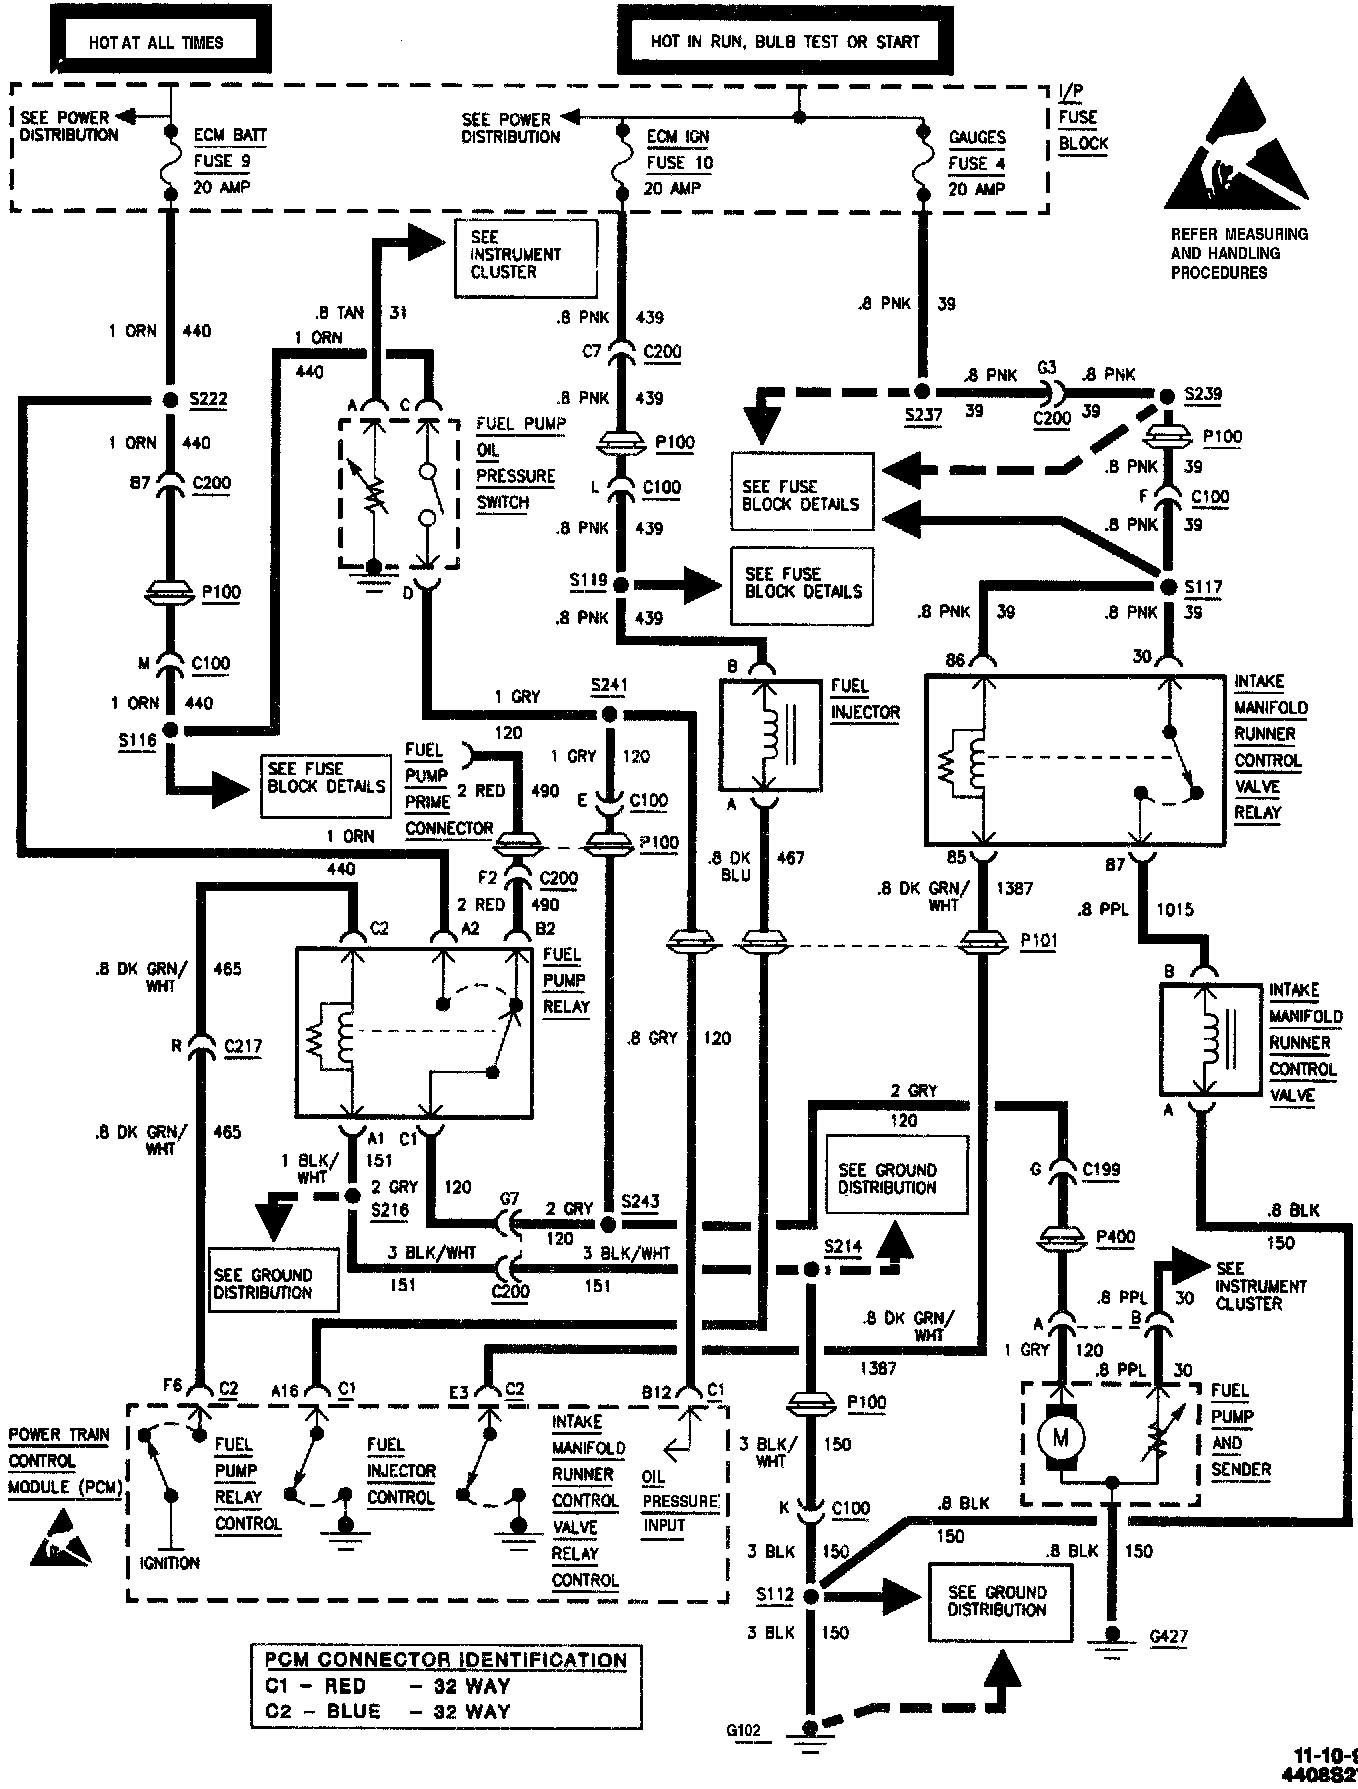 23e05 Twin Star Heater Wire Diagram - Wiring Diagram K8 on